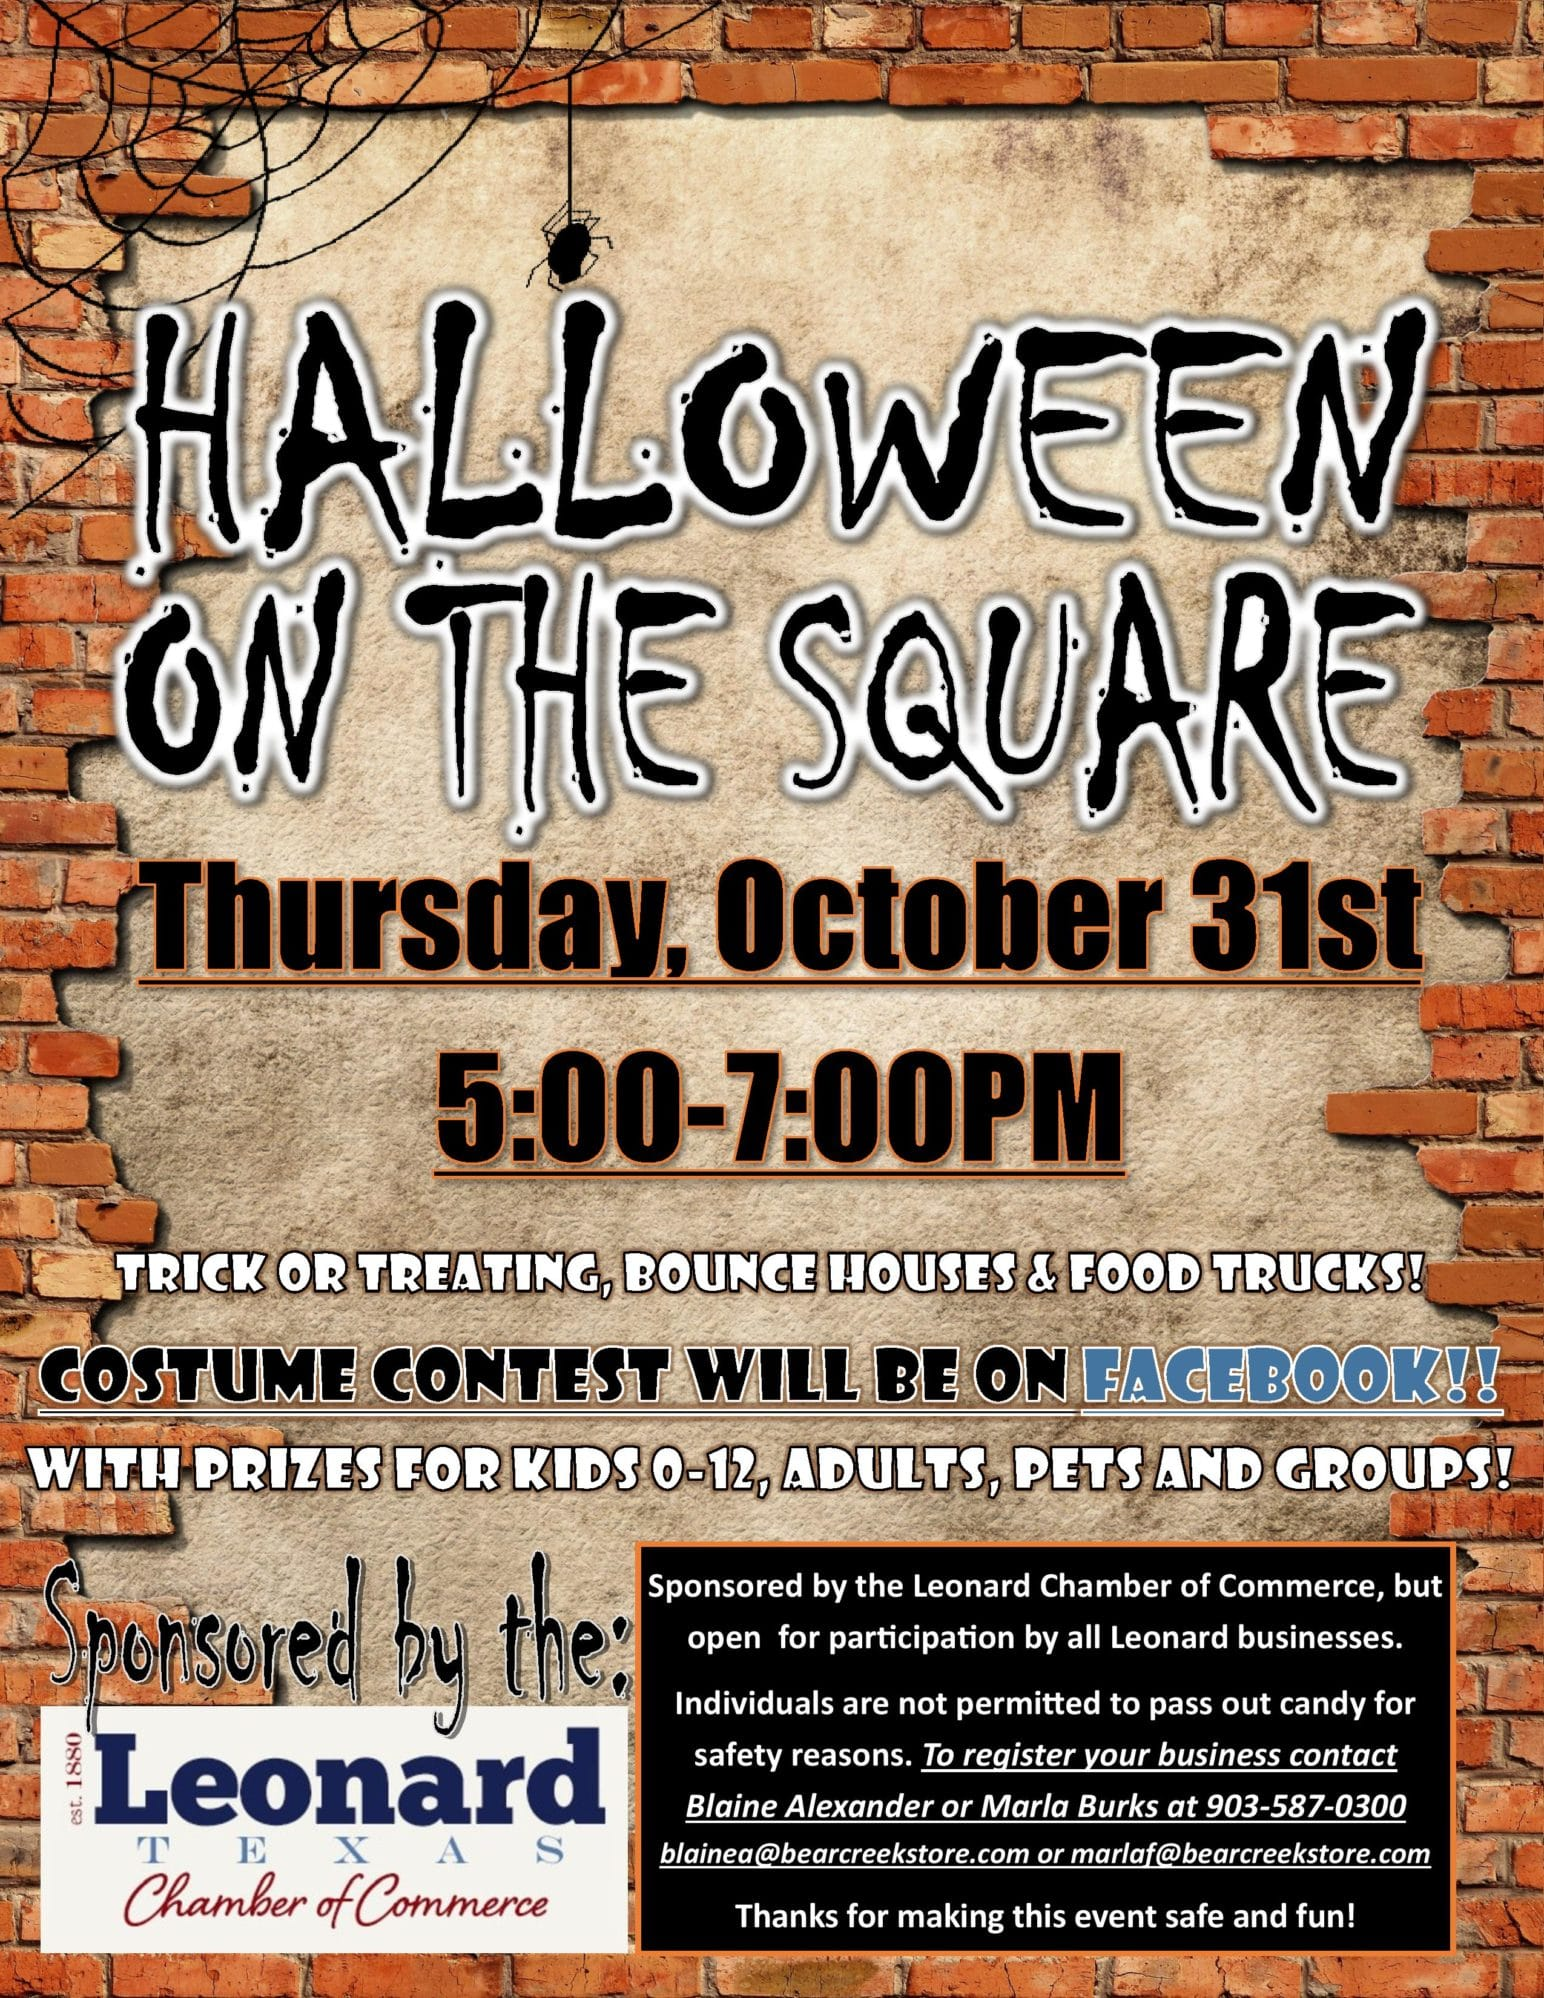 2019 Halloween on the Square Flyer